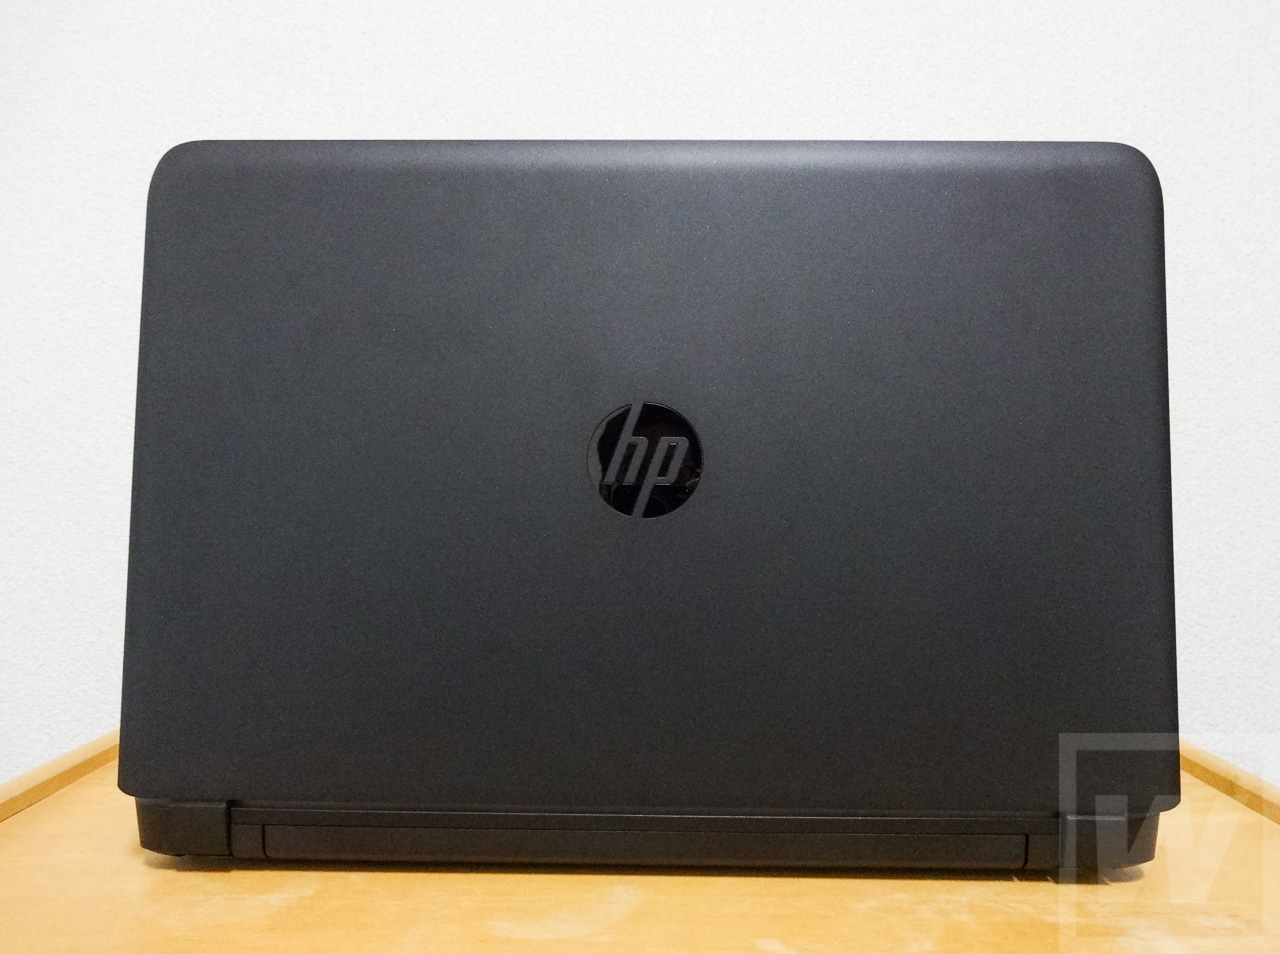 HP Pavilion Gaming 15-ak000 Review 019